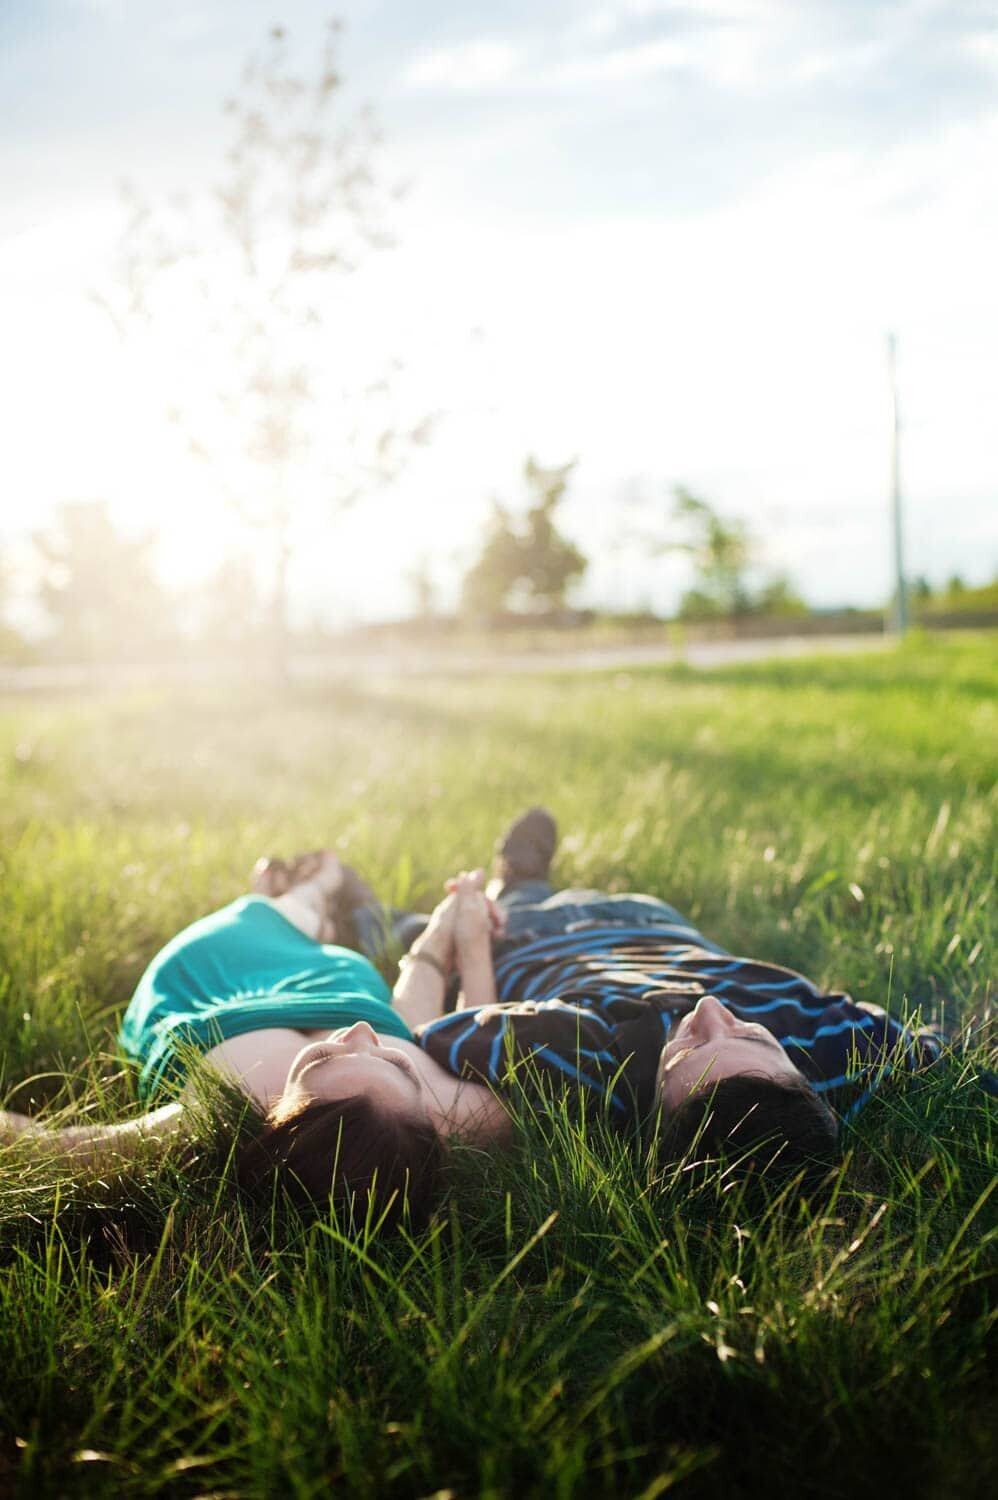 a man and woman lay in the grass drenched in sunshine